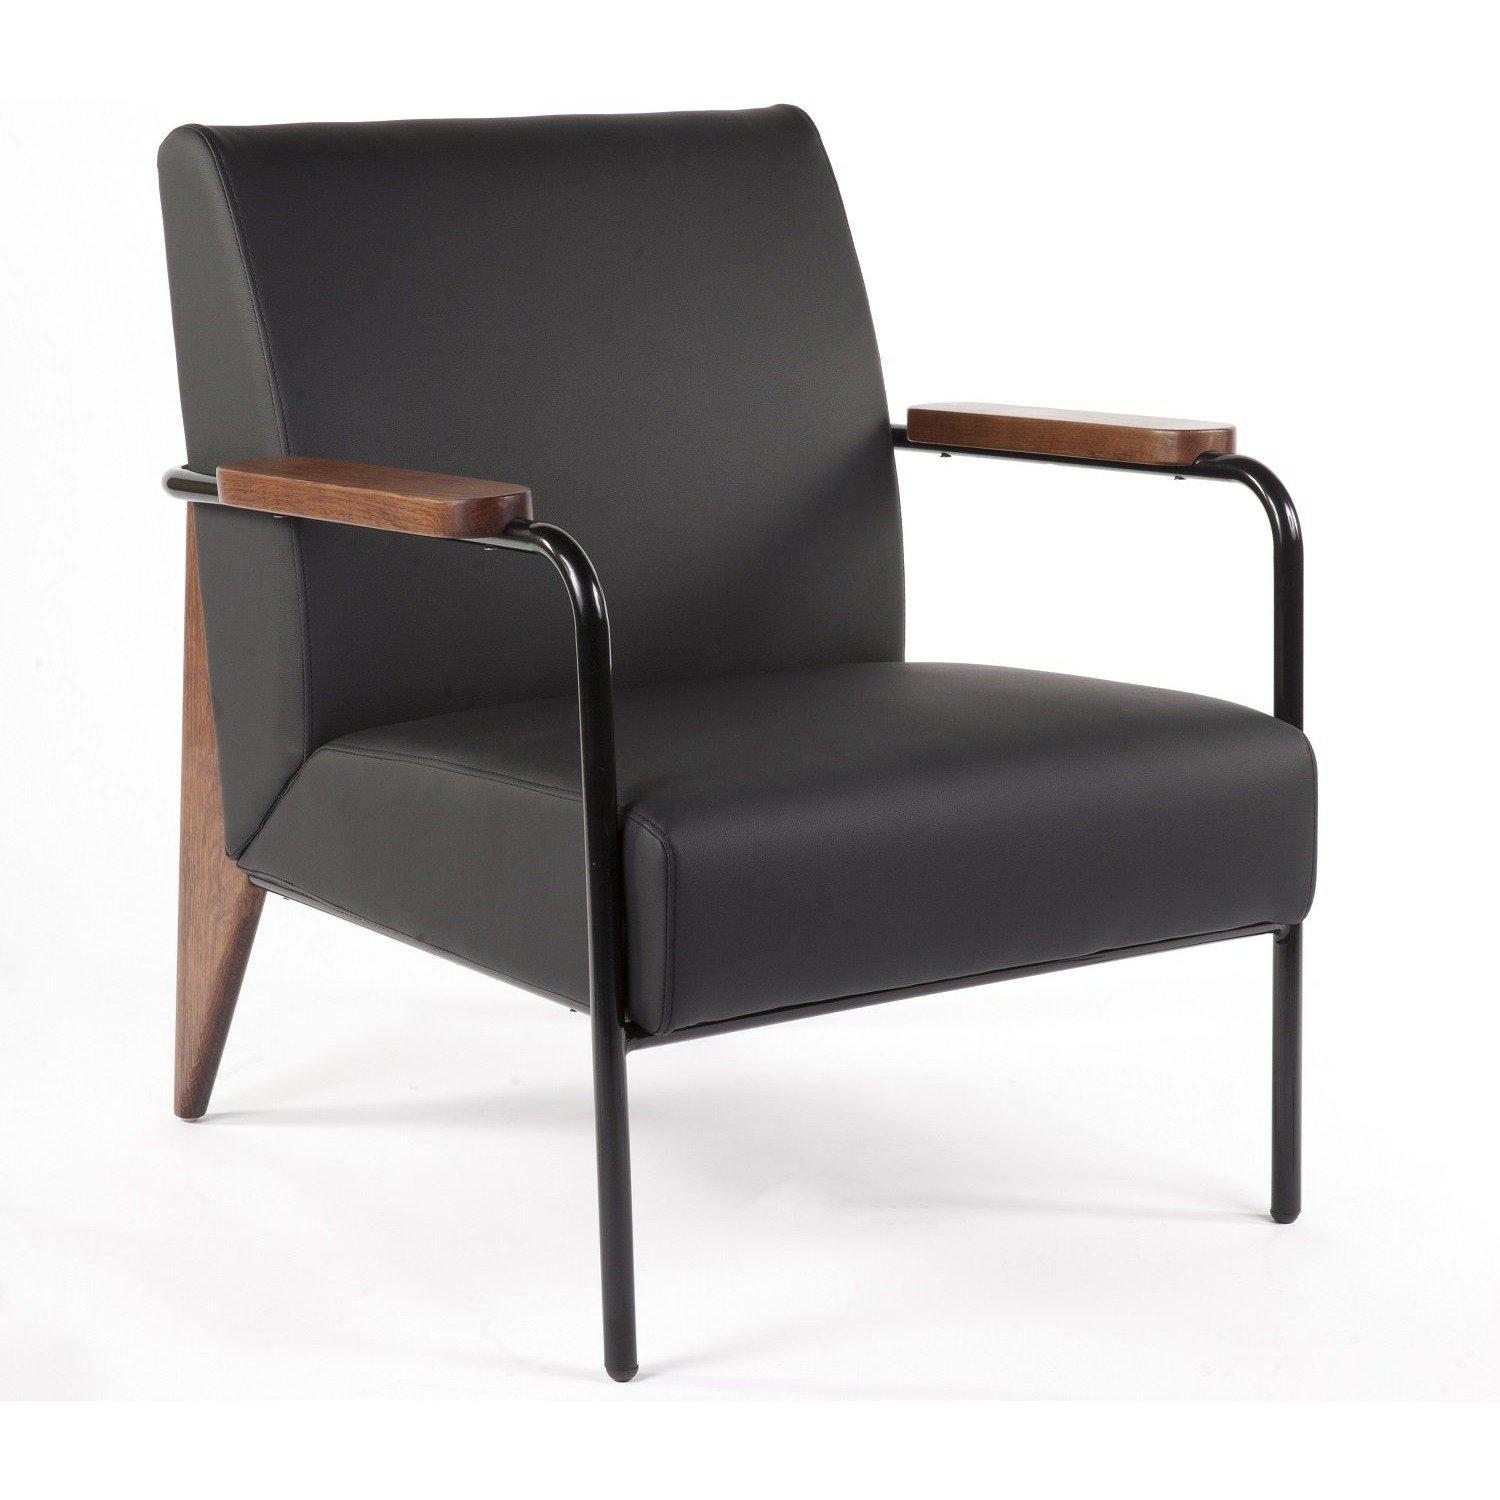 [FX88601BLK] The Linz Arm Chair